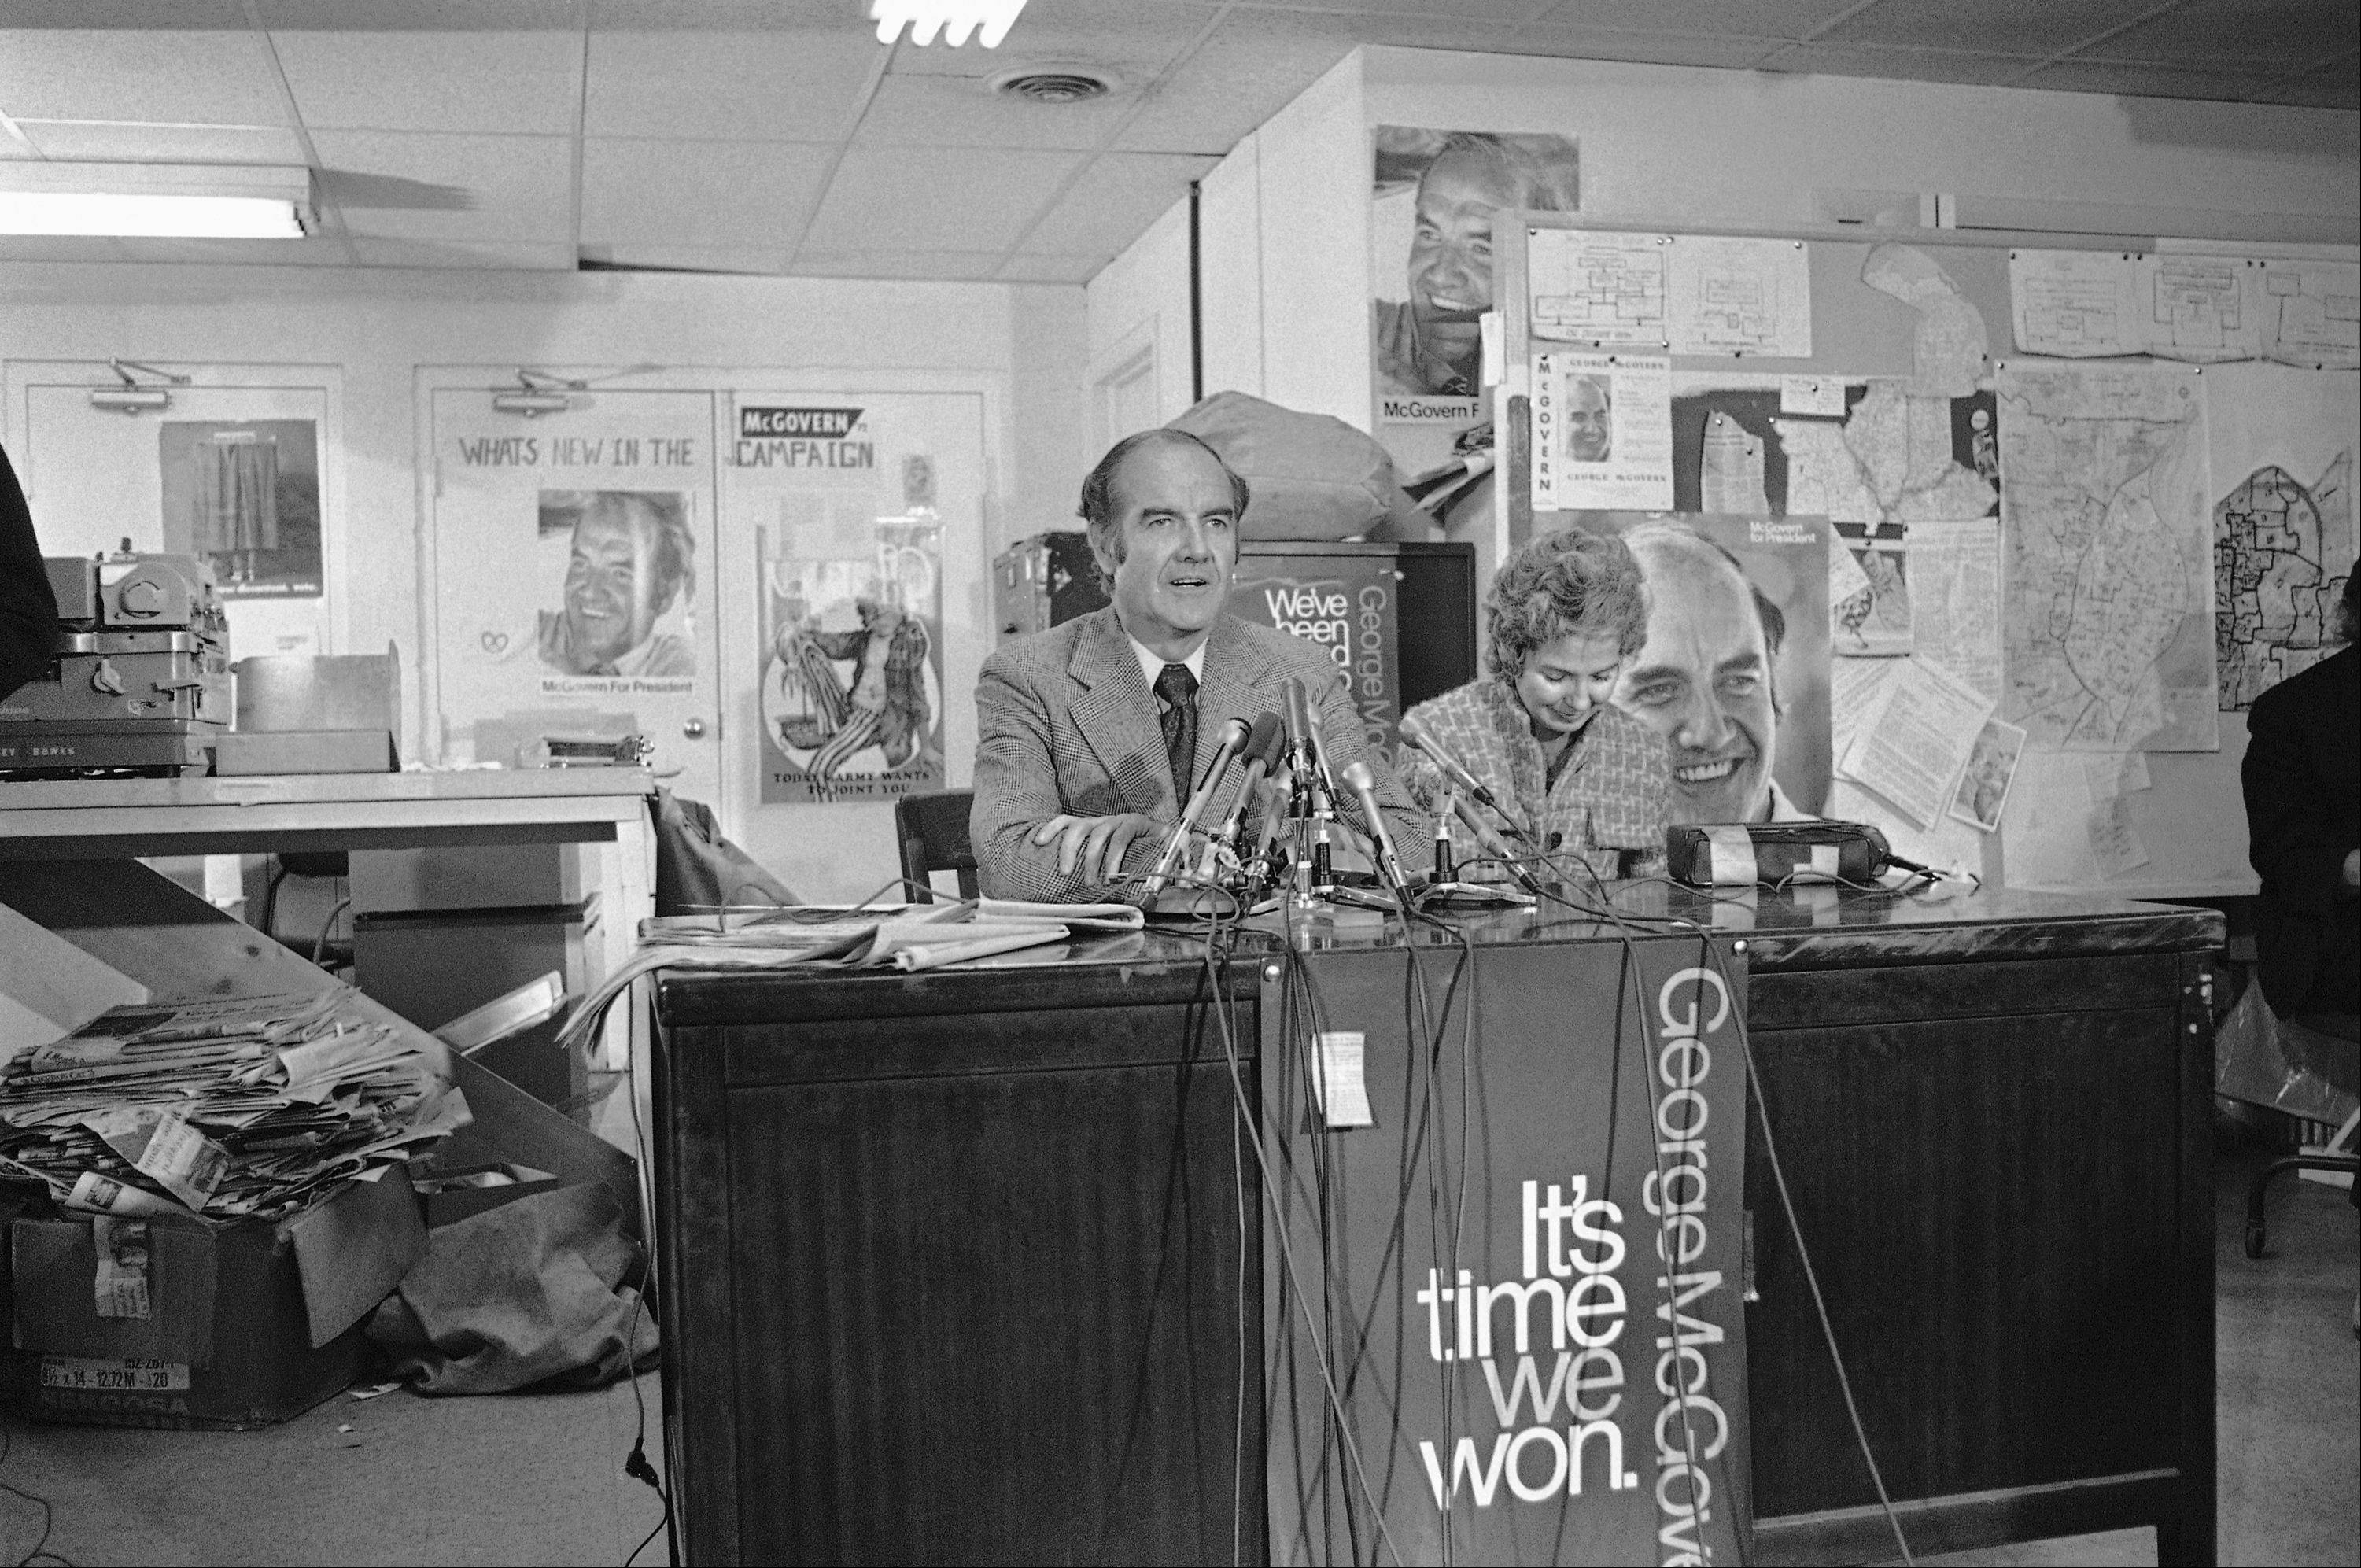 Sen. George S. McGovern tells those gathered at his Washington campaign headquarters the New Hampshire primary has launched him on the road to the nomination, March 8, 1972 in Washington. The South Dakota Democrat then left to campaign for the Florida primary. His wife Eleanor is seated beside him.